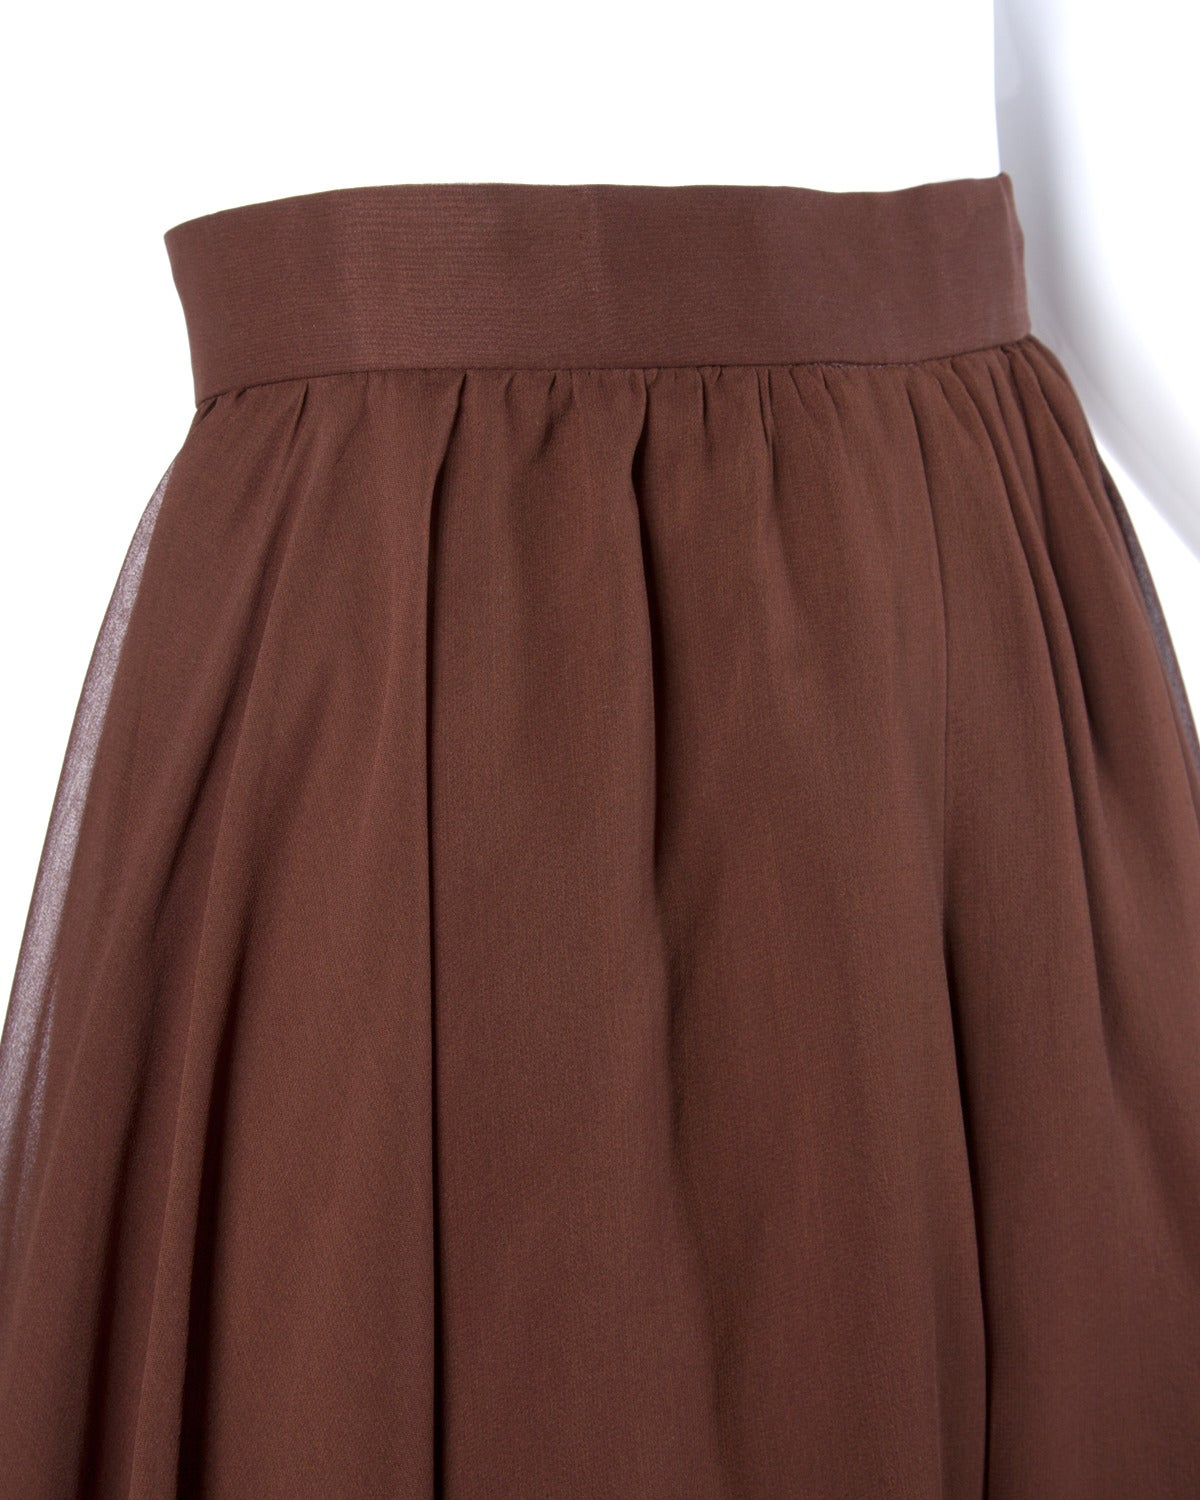 Carolina Herrera Vintage Brown Silk Chiffon Wide Leg Shorts/ Skirt 3